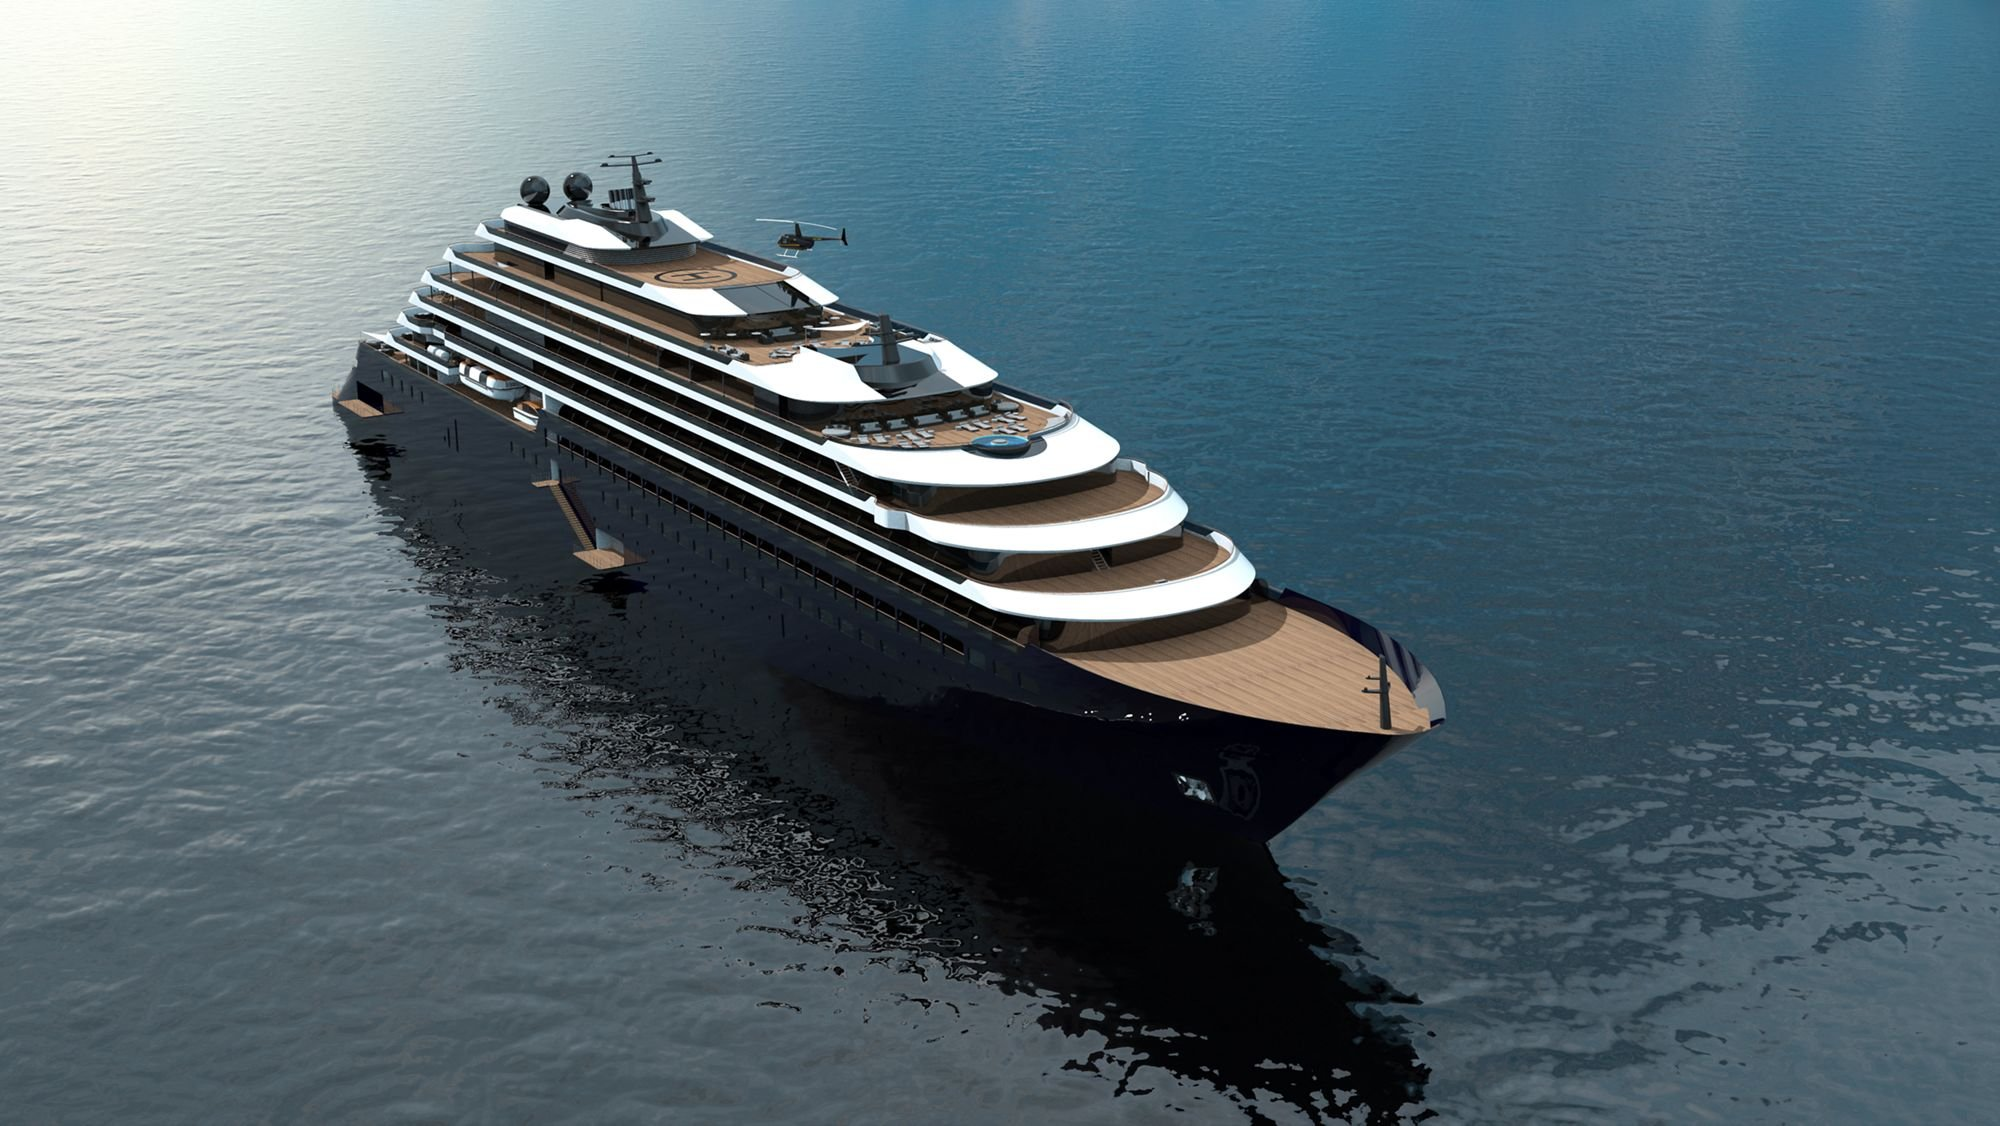 Ritz Carlton Cruise